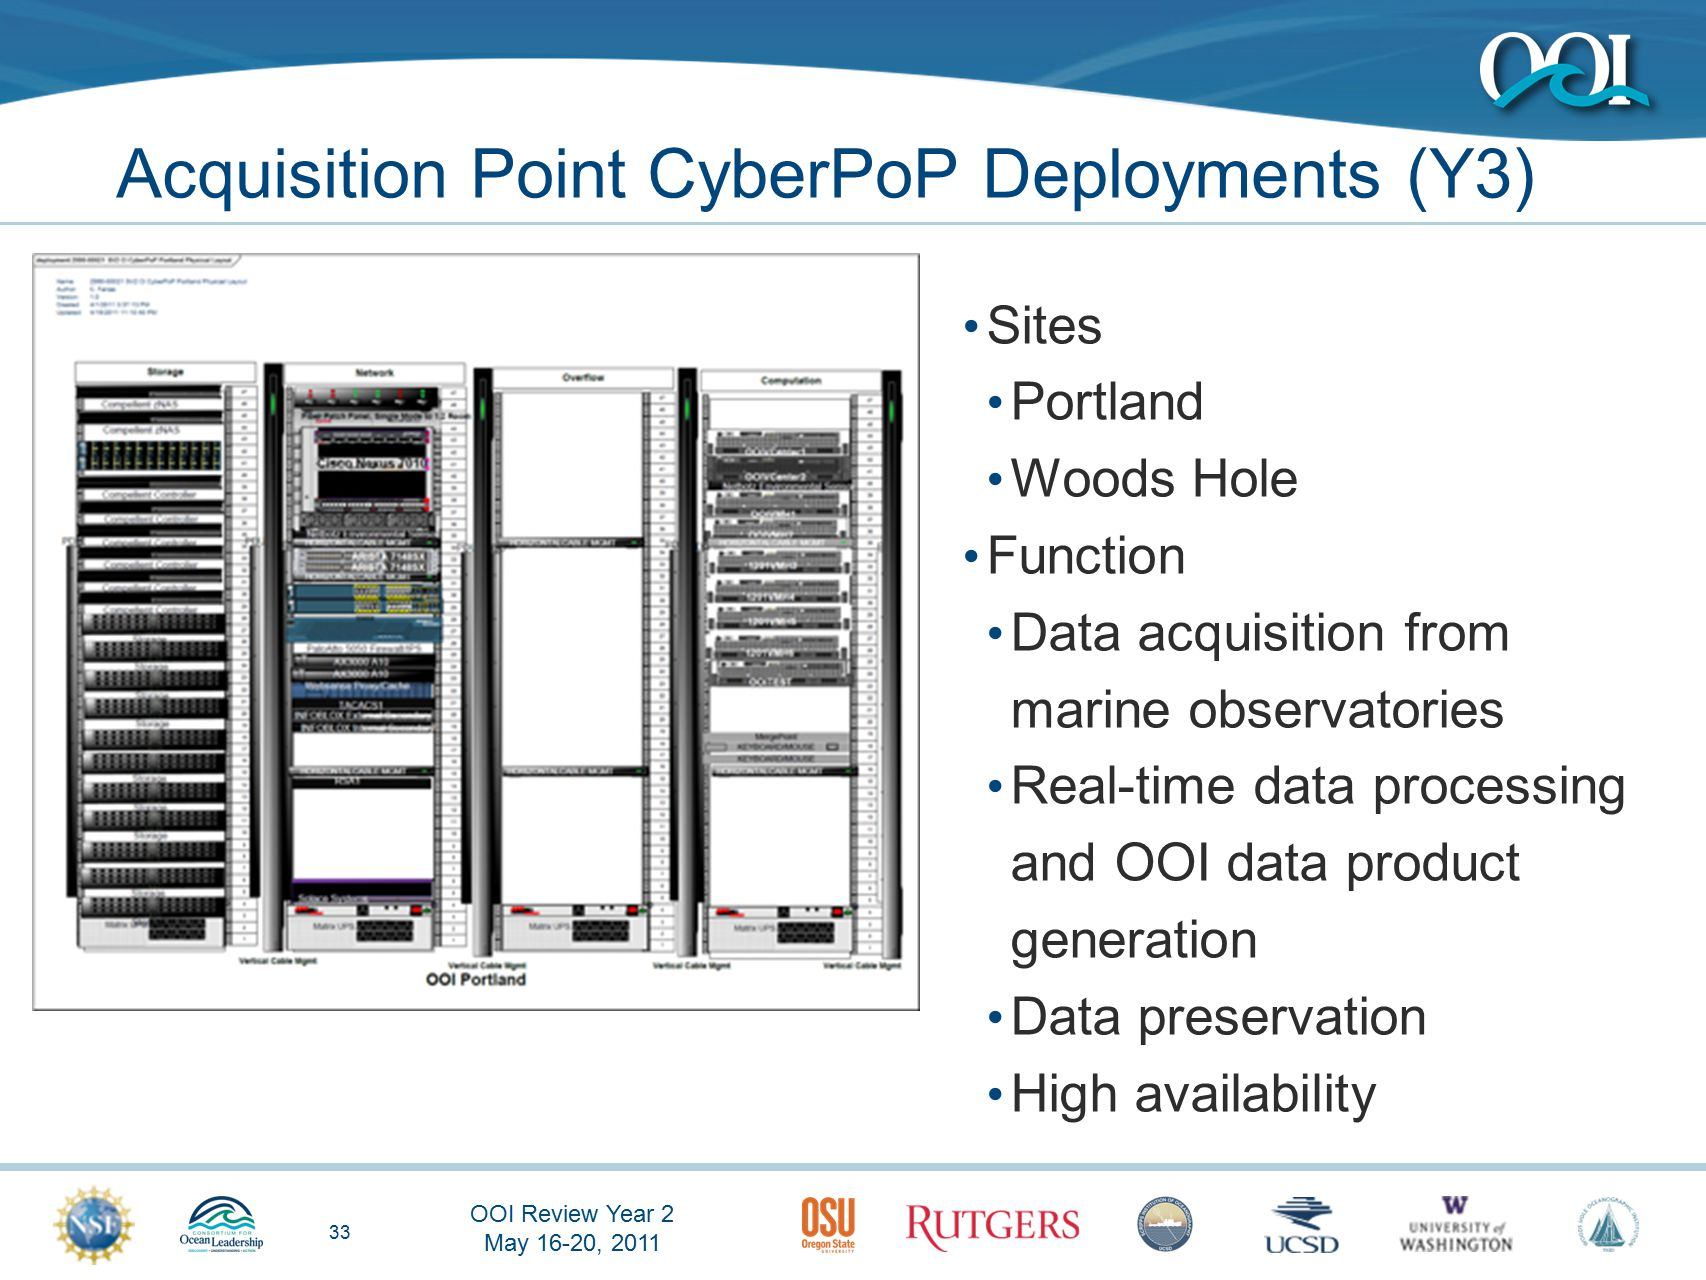 OOI Review Year 2 May 16-20, 2011 33 Acquisition Point CyberPoP Deployments (Y3) Sites Portland Woods Hole Function Data acquisition from marine observatories Real-time data processing and OOI data product generation Data preservation High availability